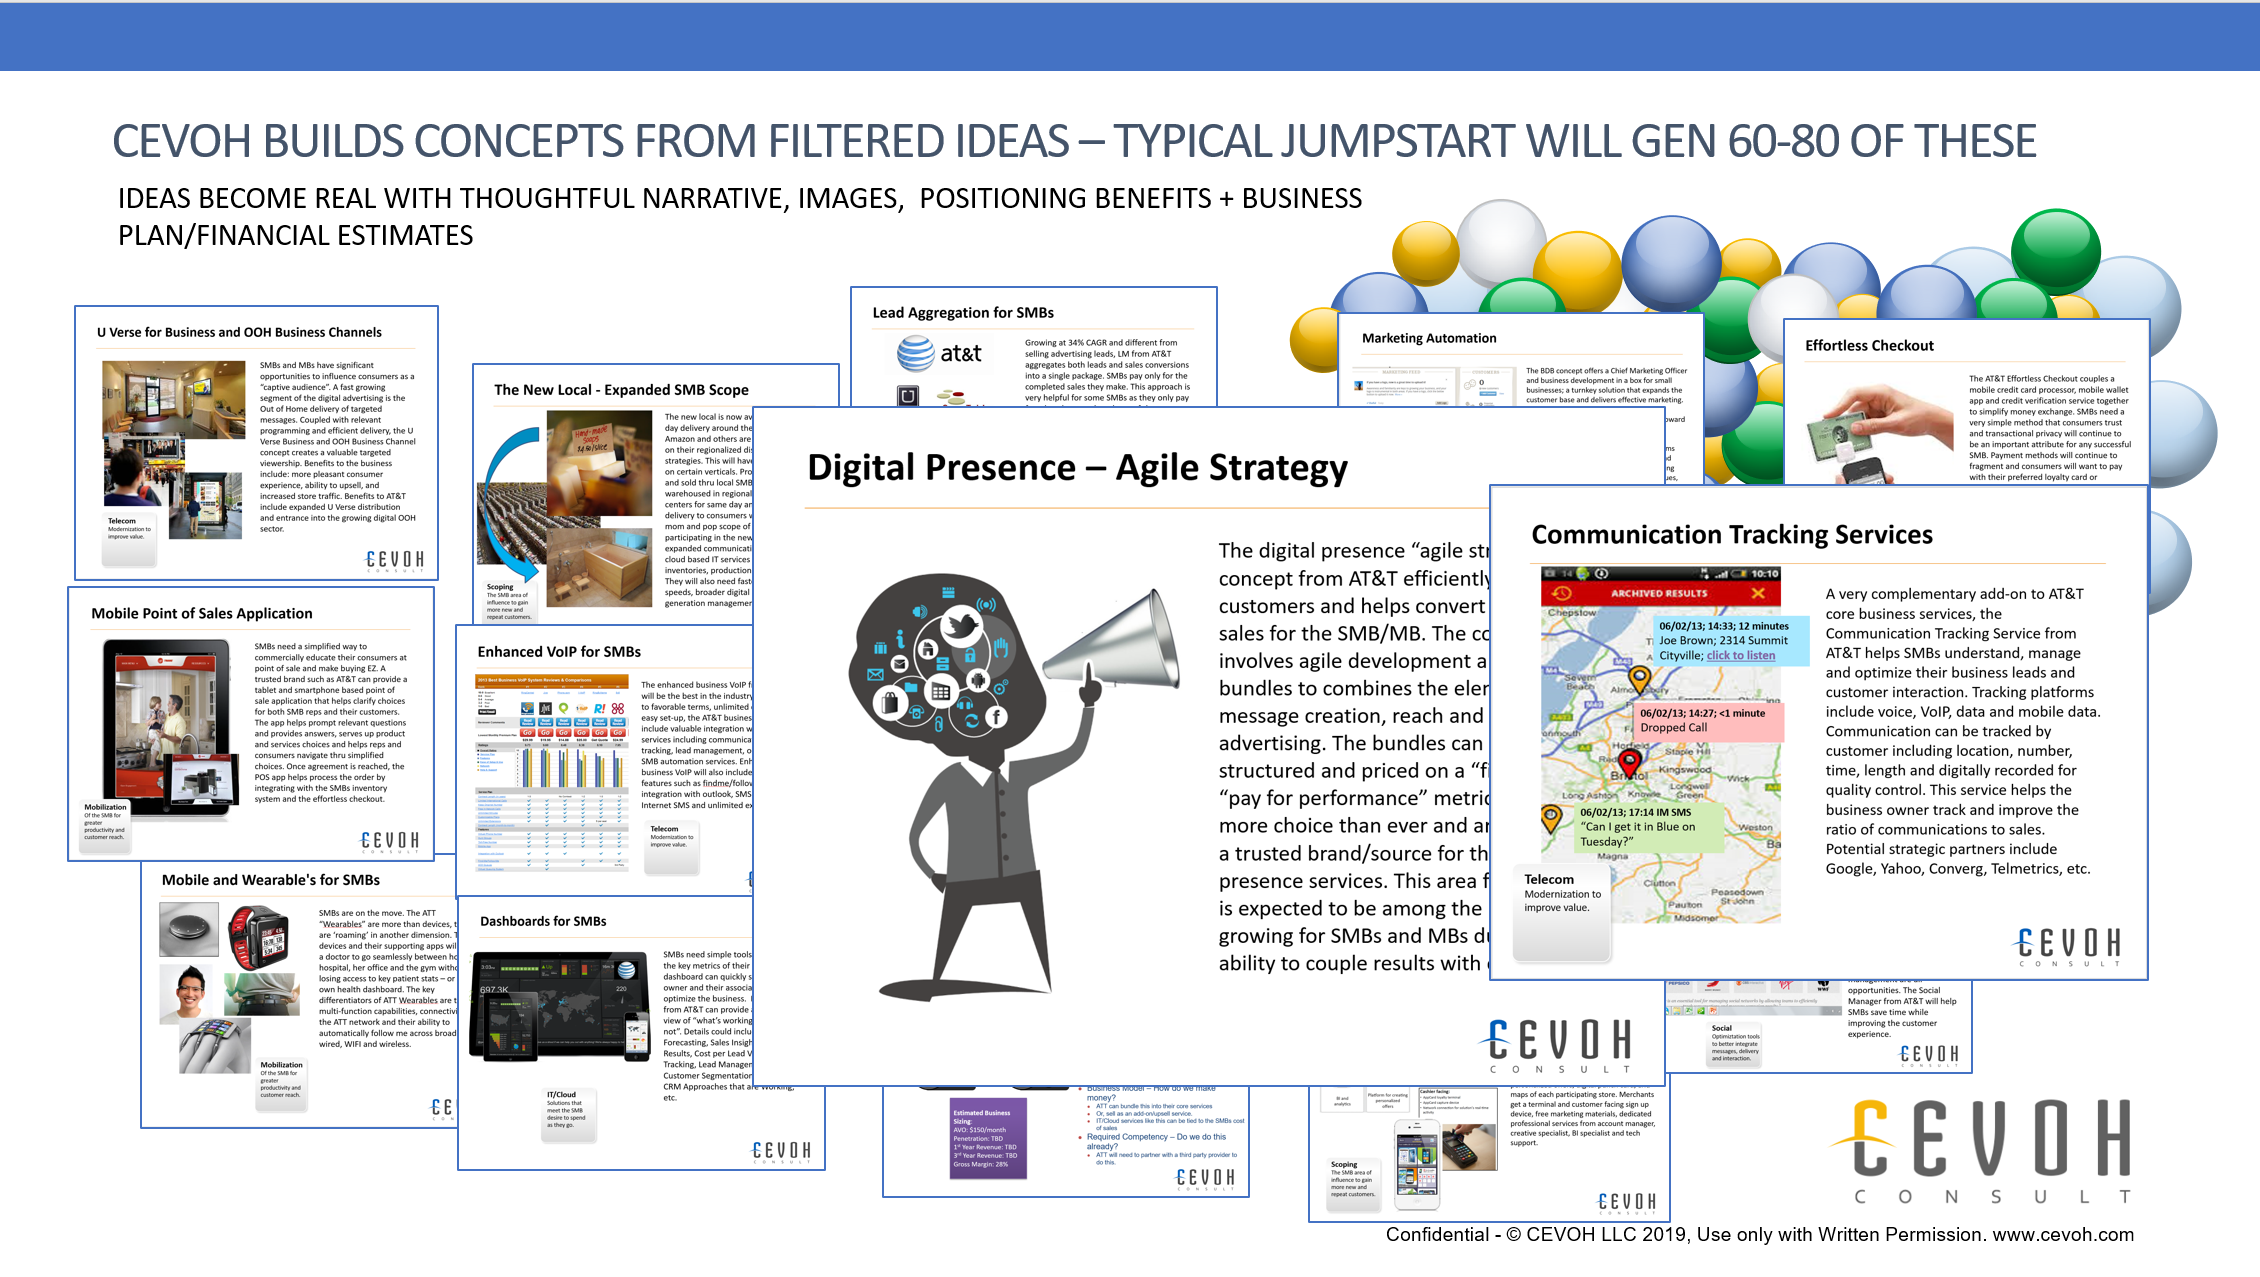 CEVOH_INNOVATION_JUMPSTARTS_builds_concepts_from_ideas.png